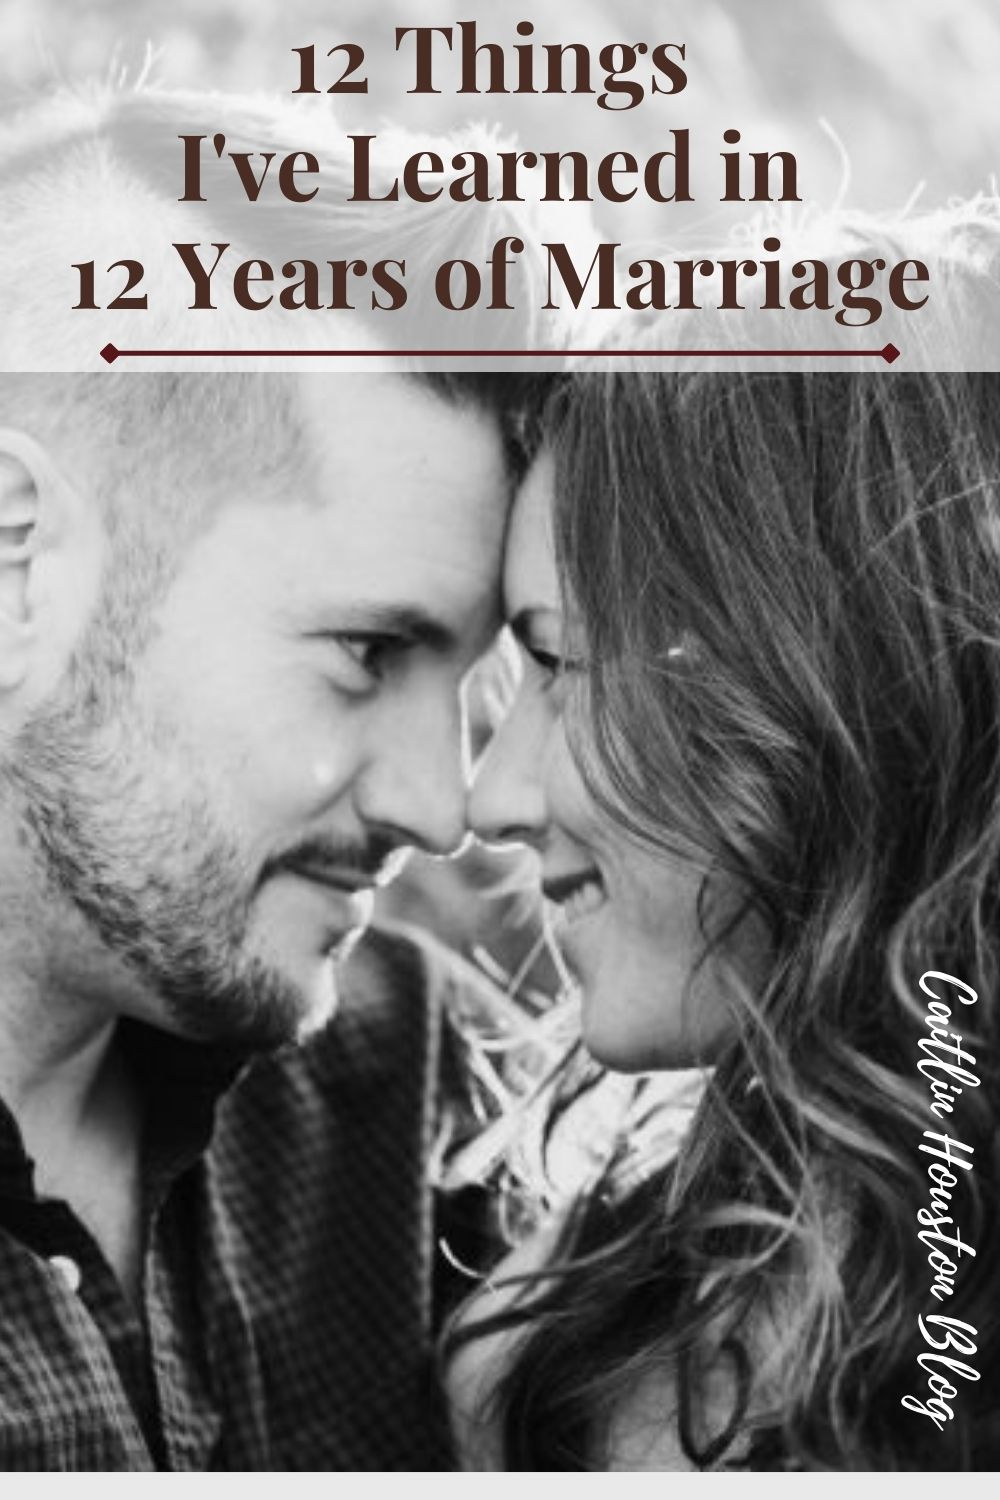 Marriage Advice // 12 Lessons in 12 Years of Marriage